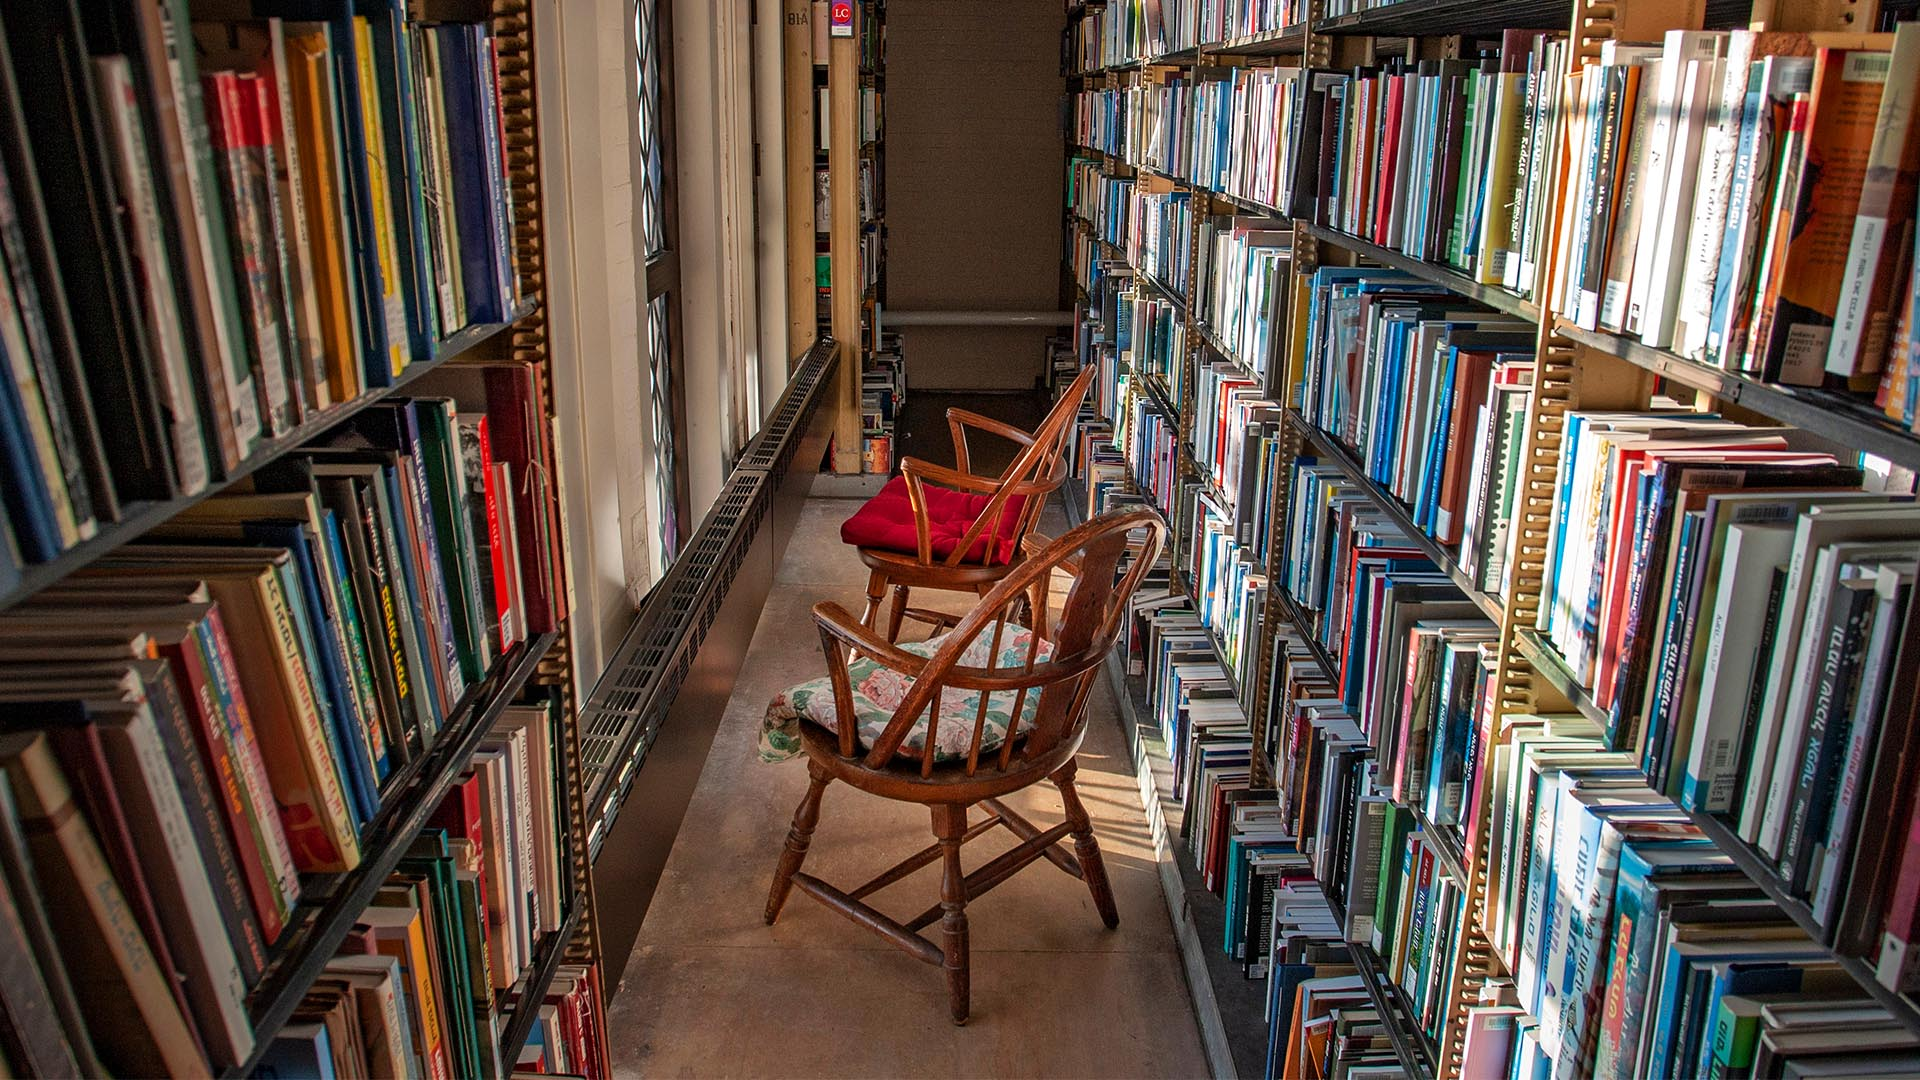 A photo of the inside of the Sterling Memorial Library stacks.